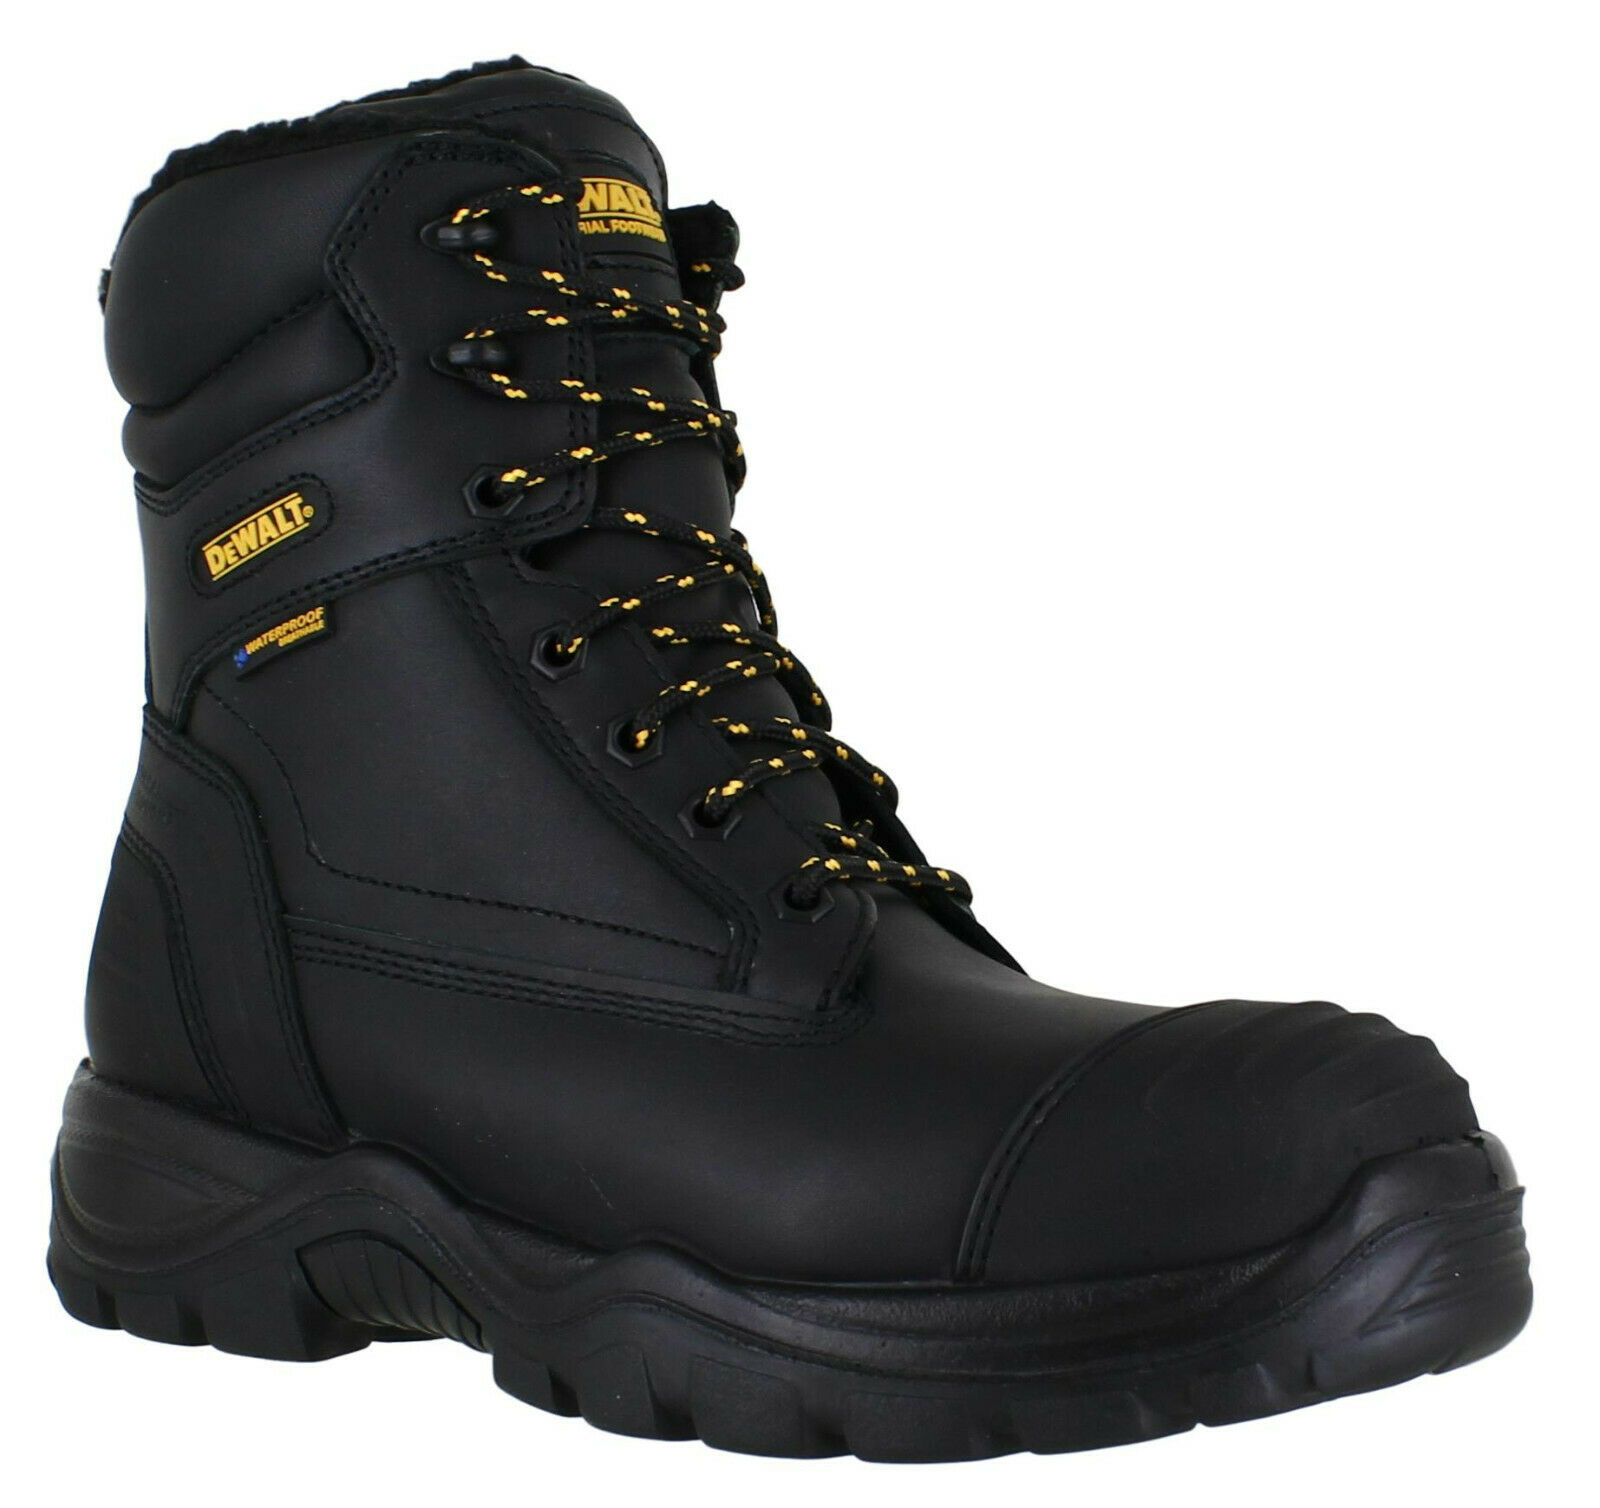 Work S3 Composite Toe Boots Sizes 6